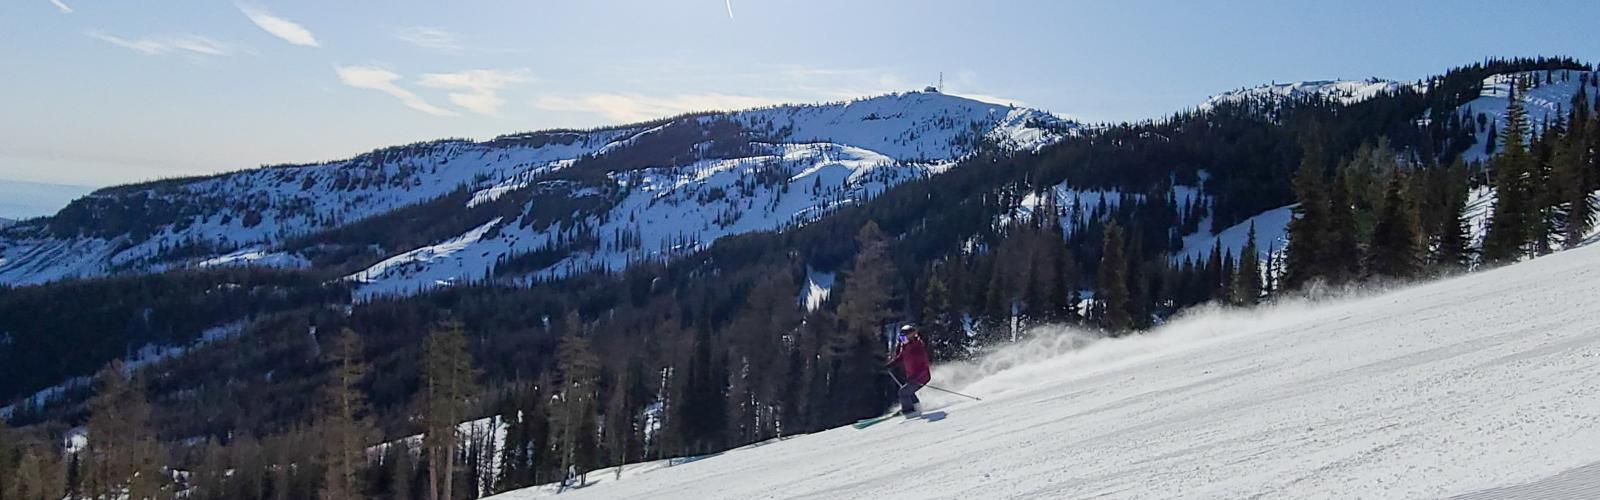 skier making a turn on Bomber Bowl with Microwave tower in background